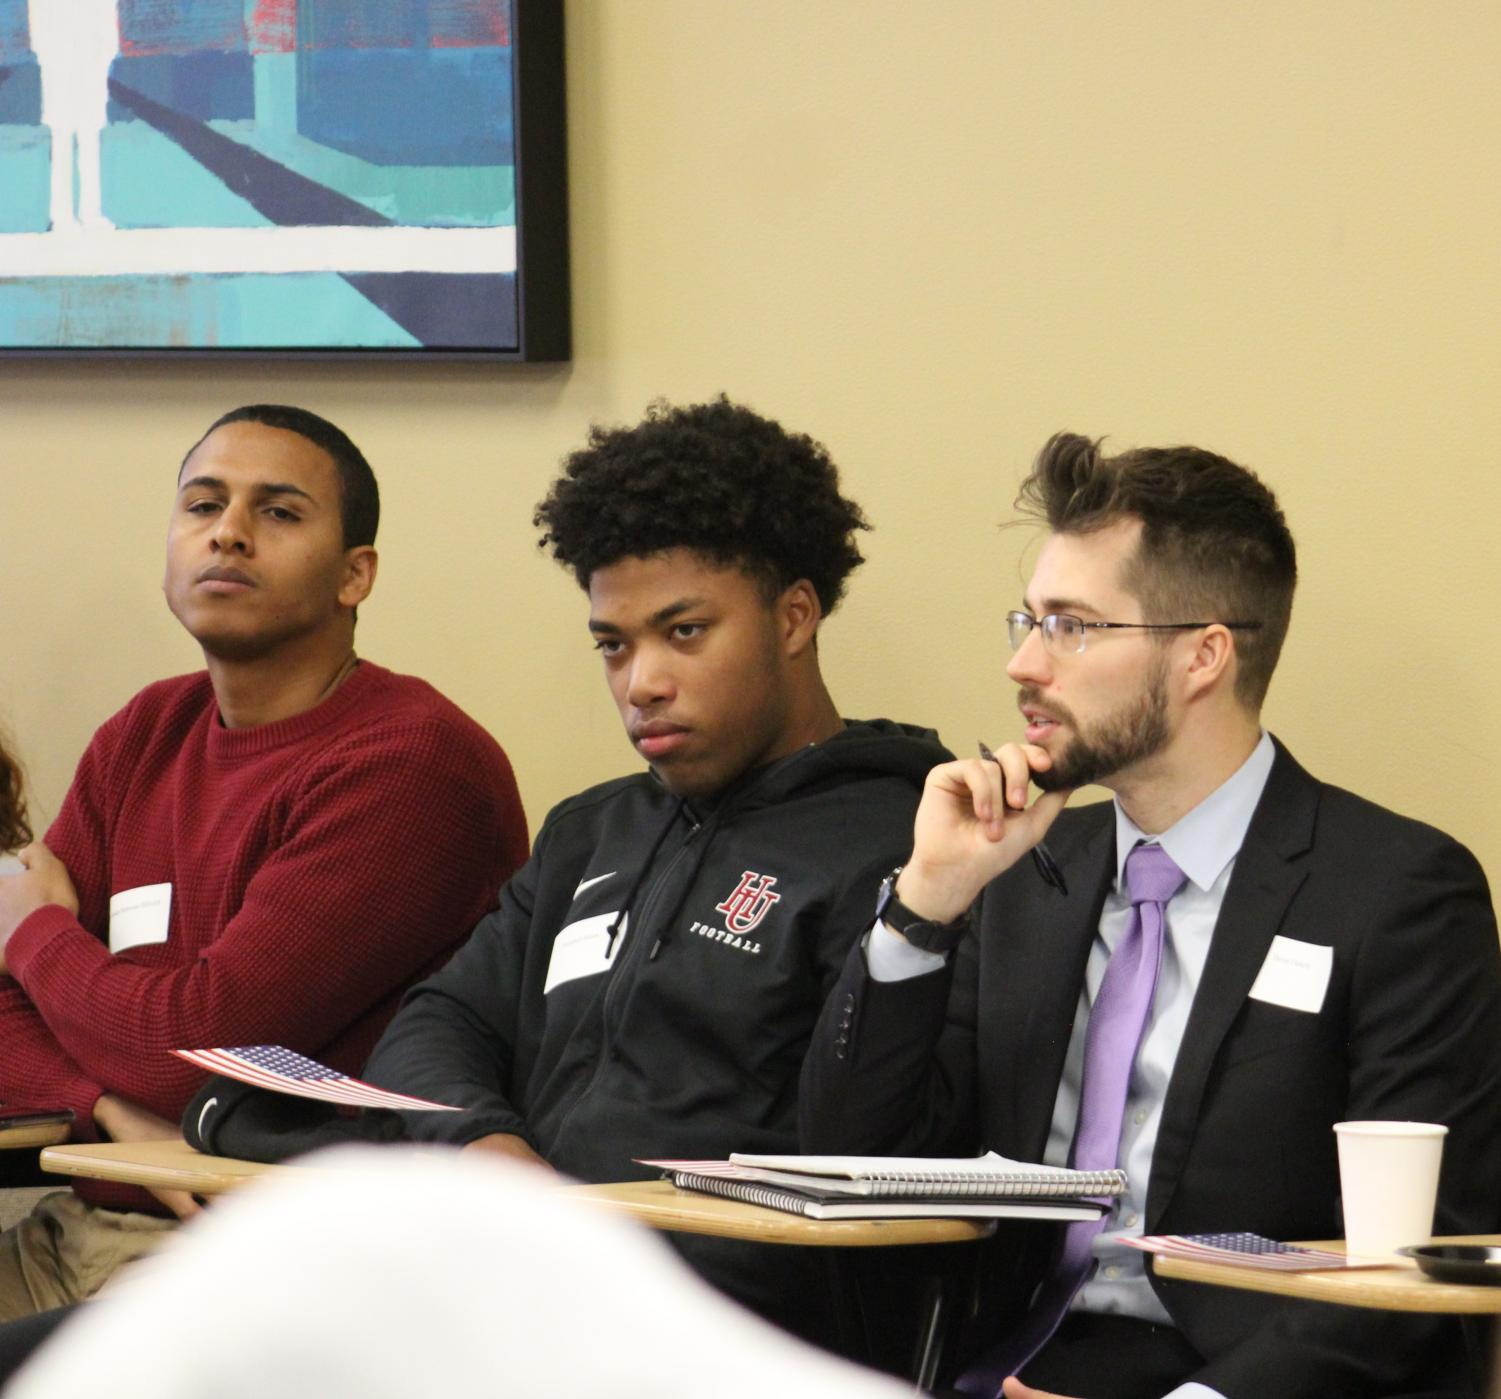 Hassan Mahmoud Jiddah, Manny Moton and Devan Flaherty listen intently to ongoing discussion.